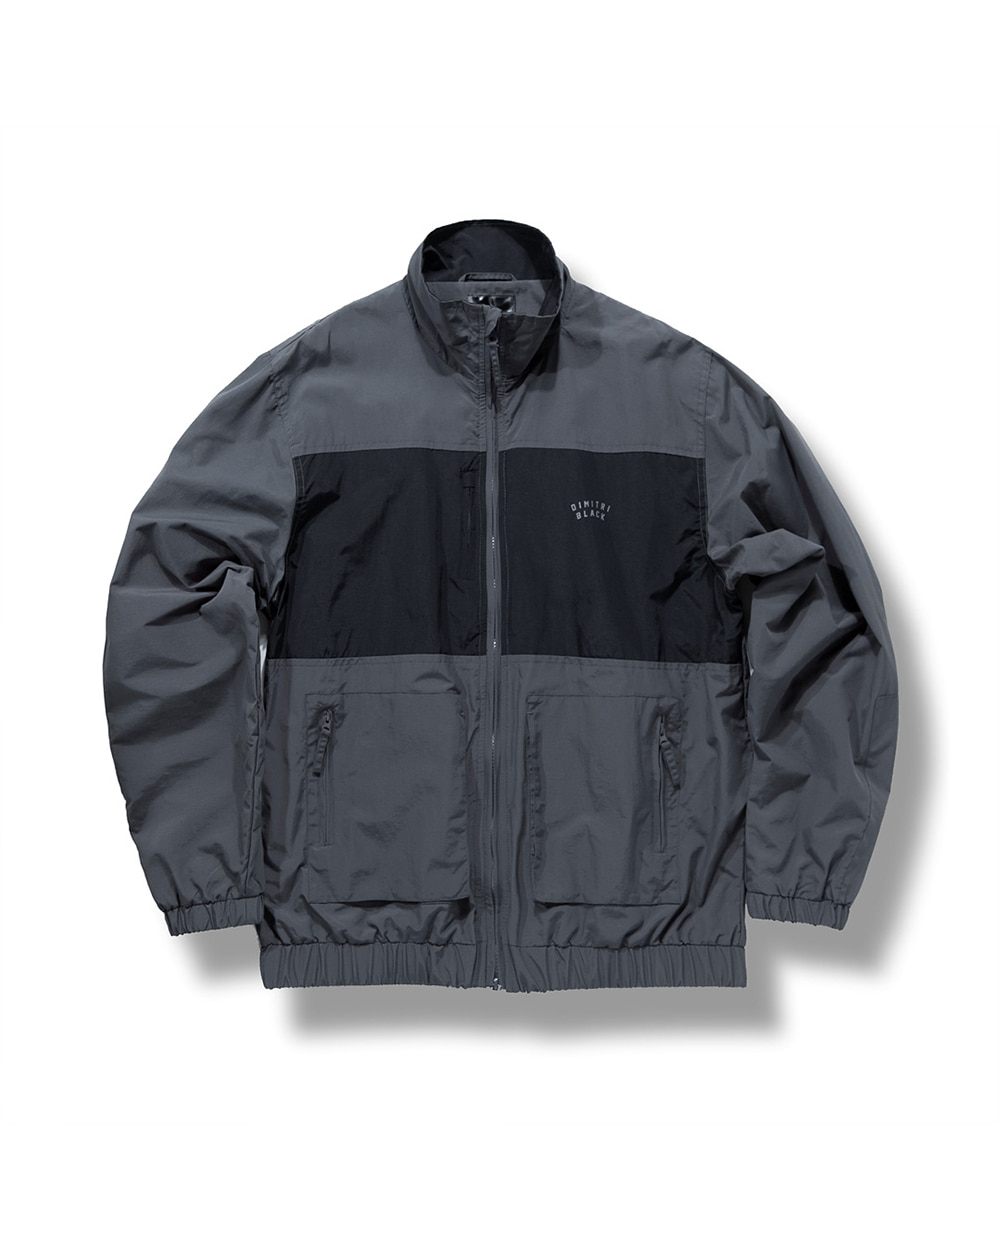 IPFU TRACK JACKET DARK GRAY